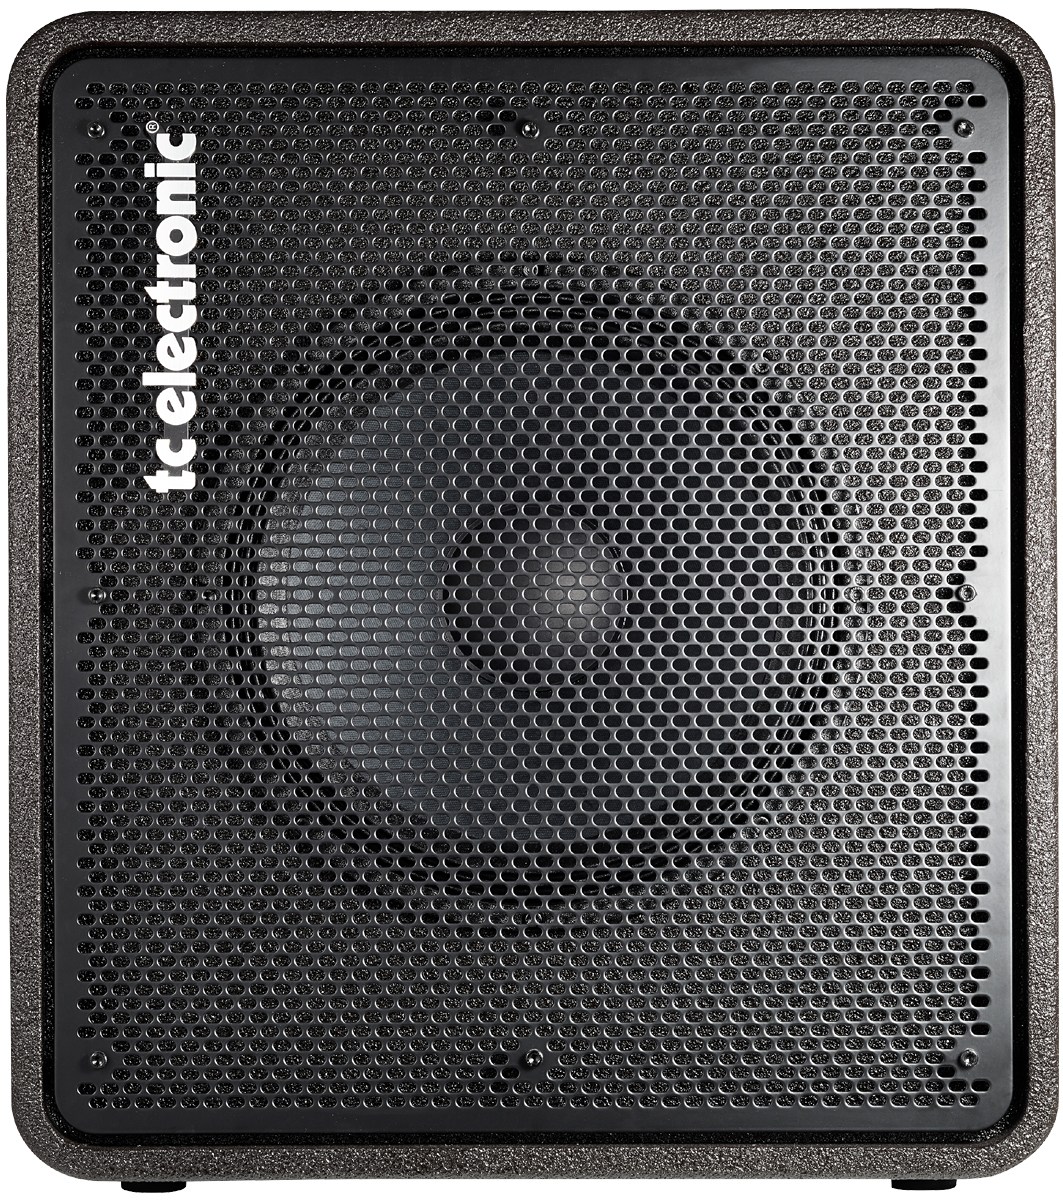 cabinet bajaao amp online buy bass ampeg india products com